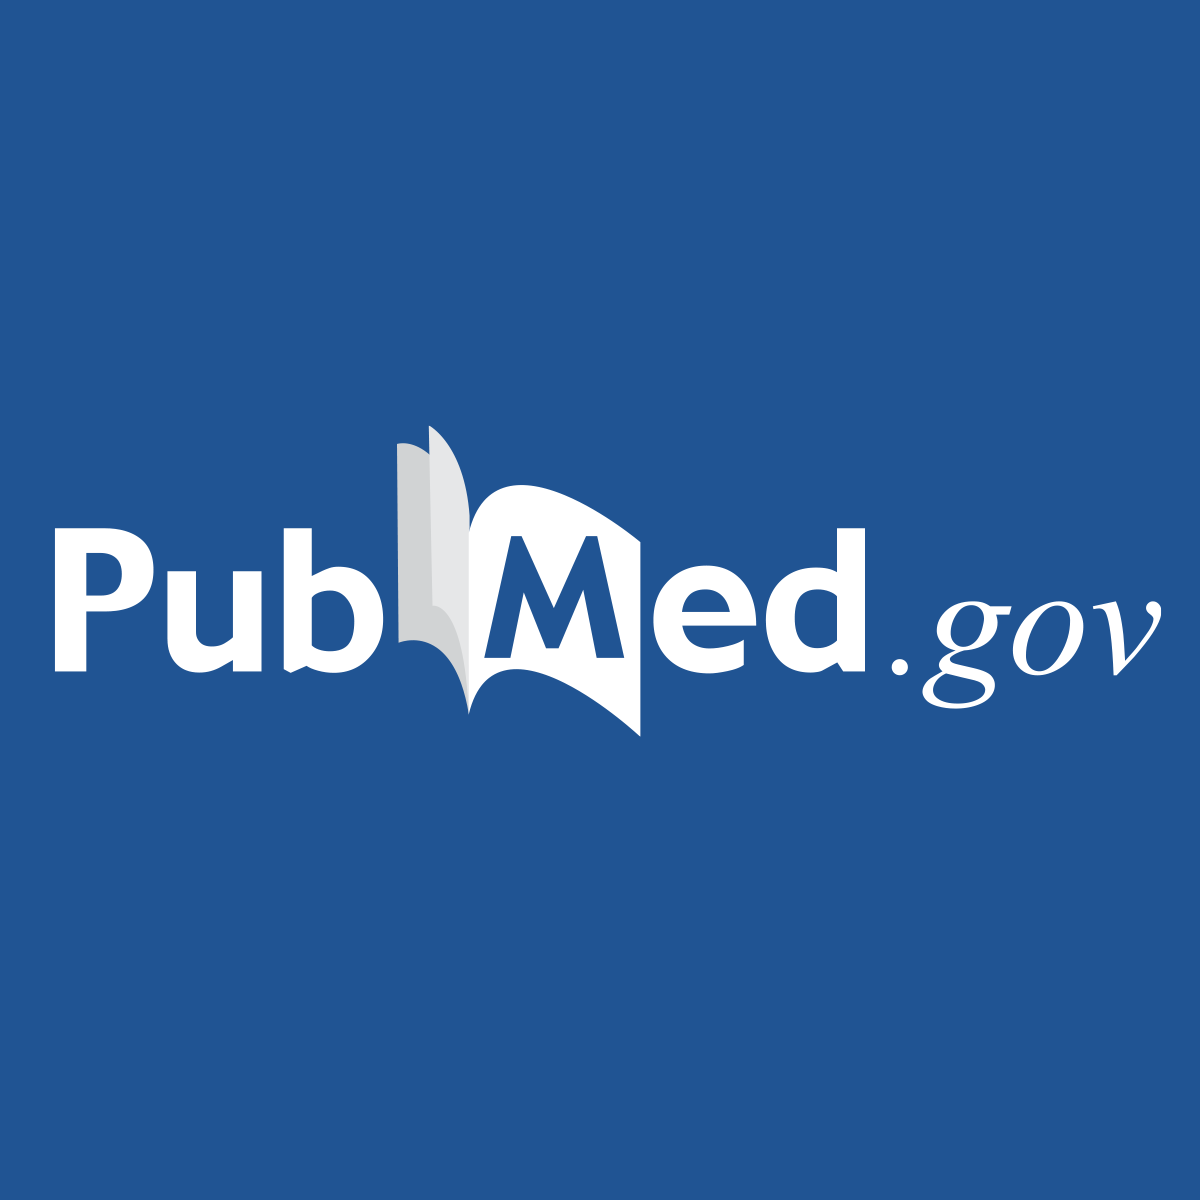 Sodium-glucose Cotransporter 2 Inhibitors: Impact on Body Weight and Blood Pressure Compared With Other Antidiabetic Drugs